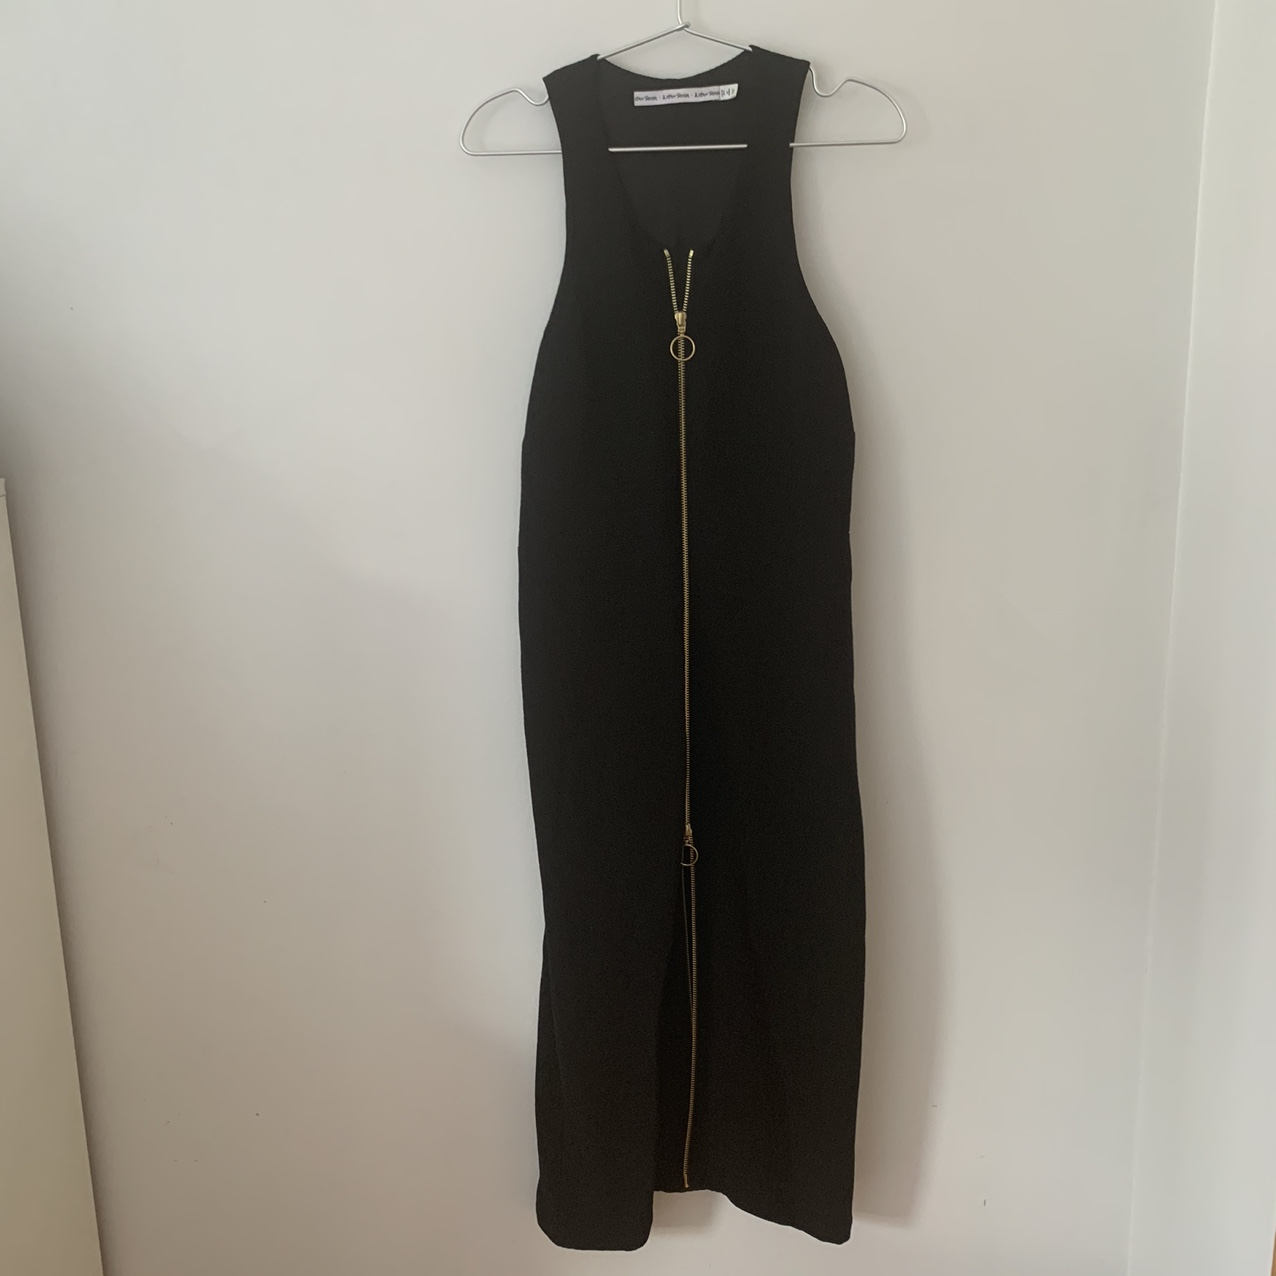 Product Image 1 - & Other Stories Black Dress Size: